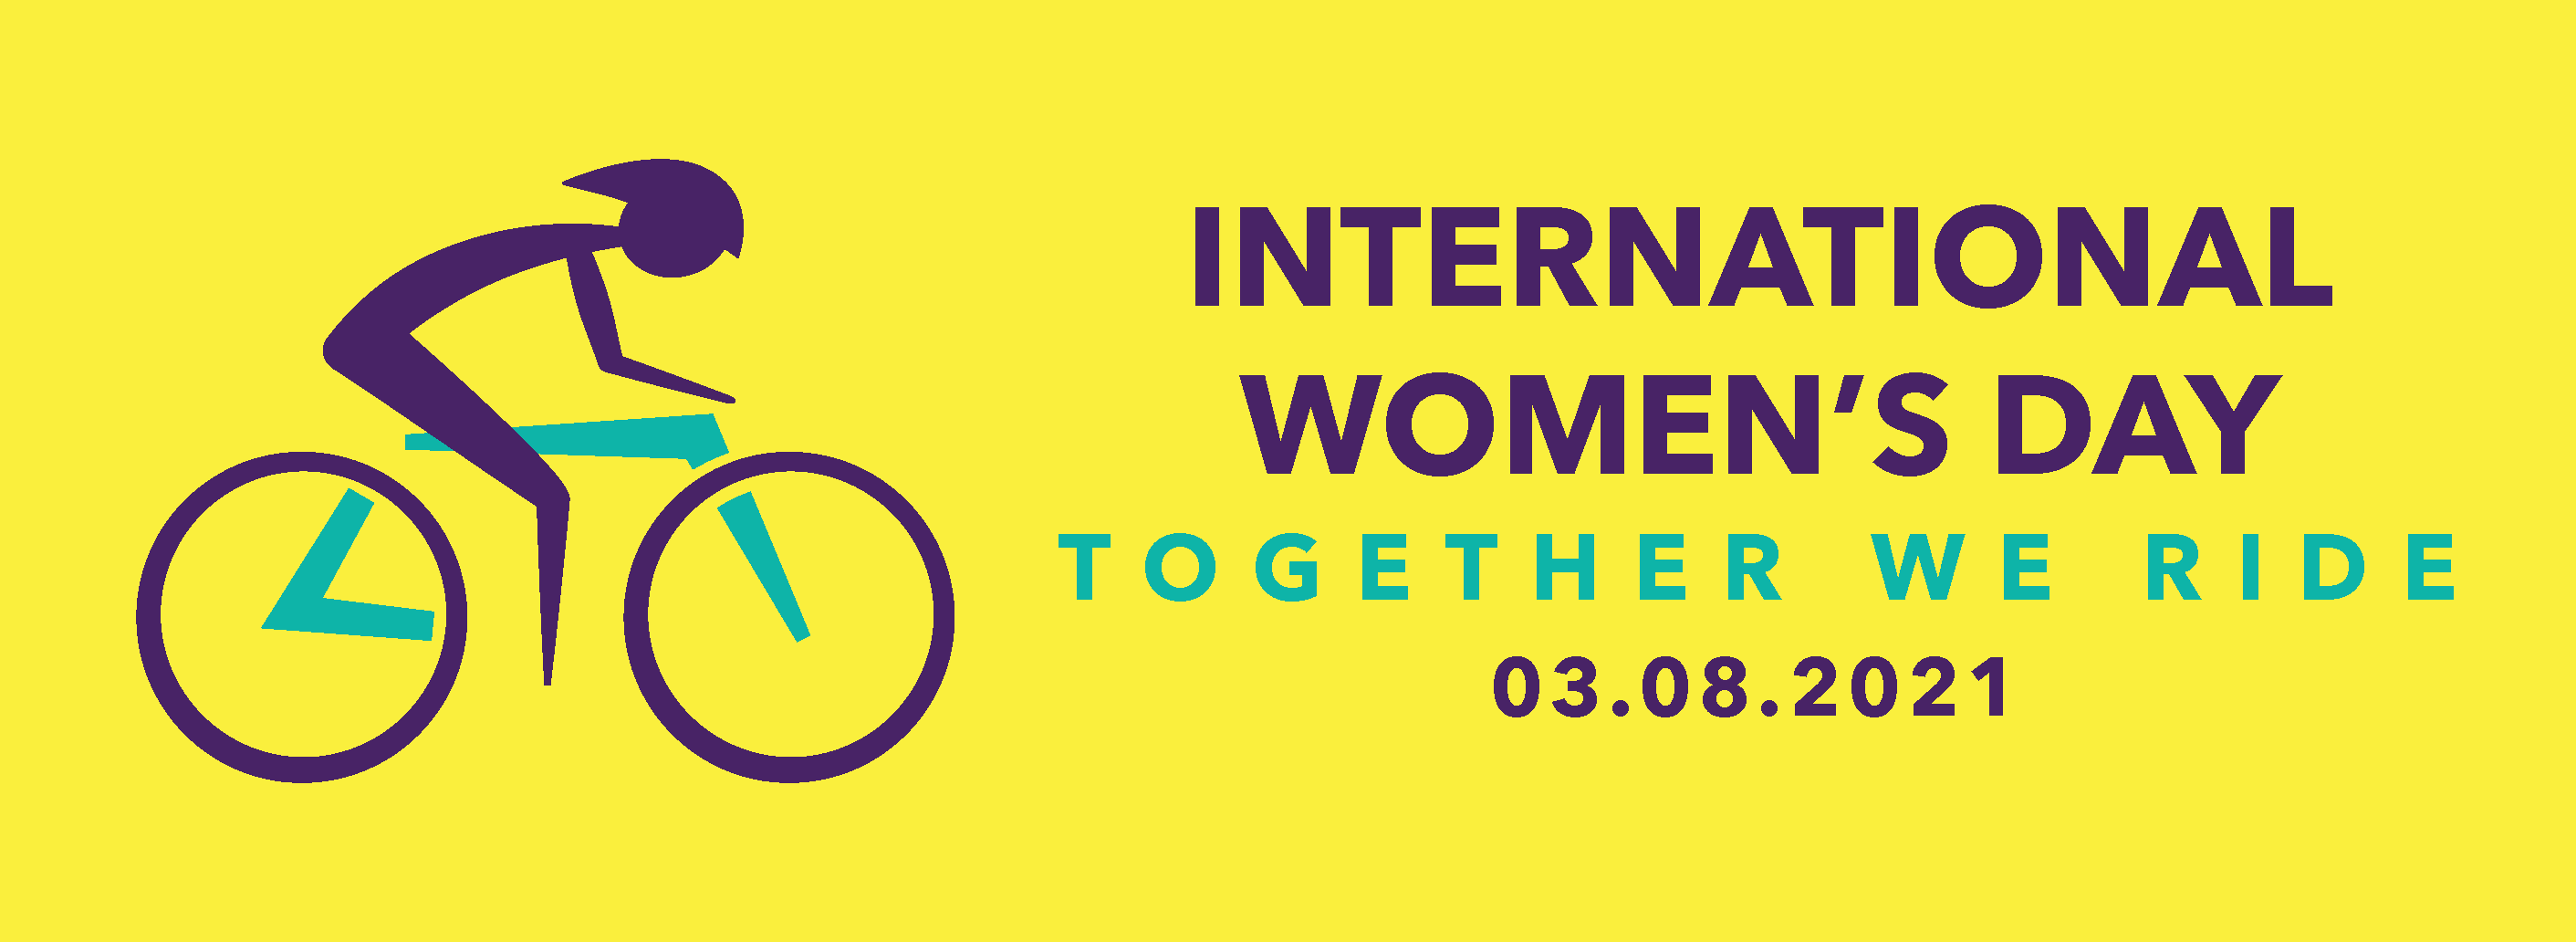 INTERNATIONAL WOMEN'S DAY TOGETHER WE RIDE 2021:  A bike ride for equality, inclusion and change (reblog)